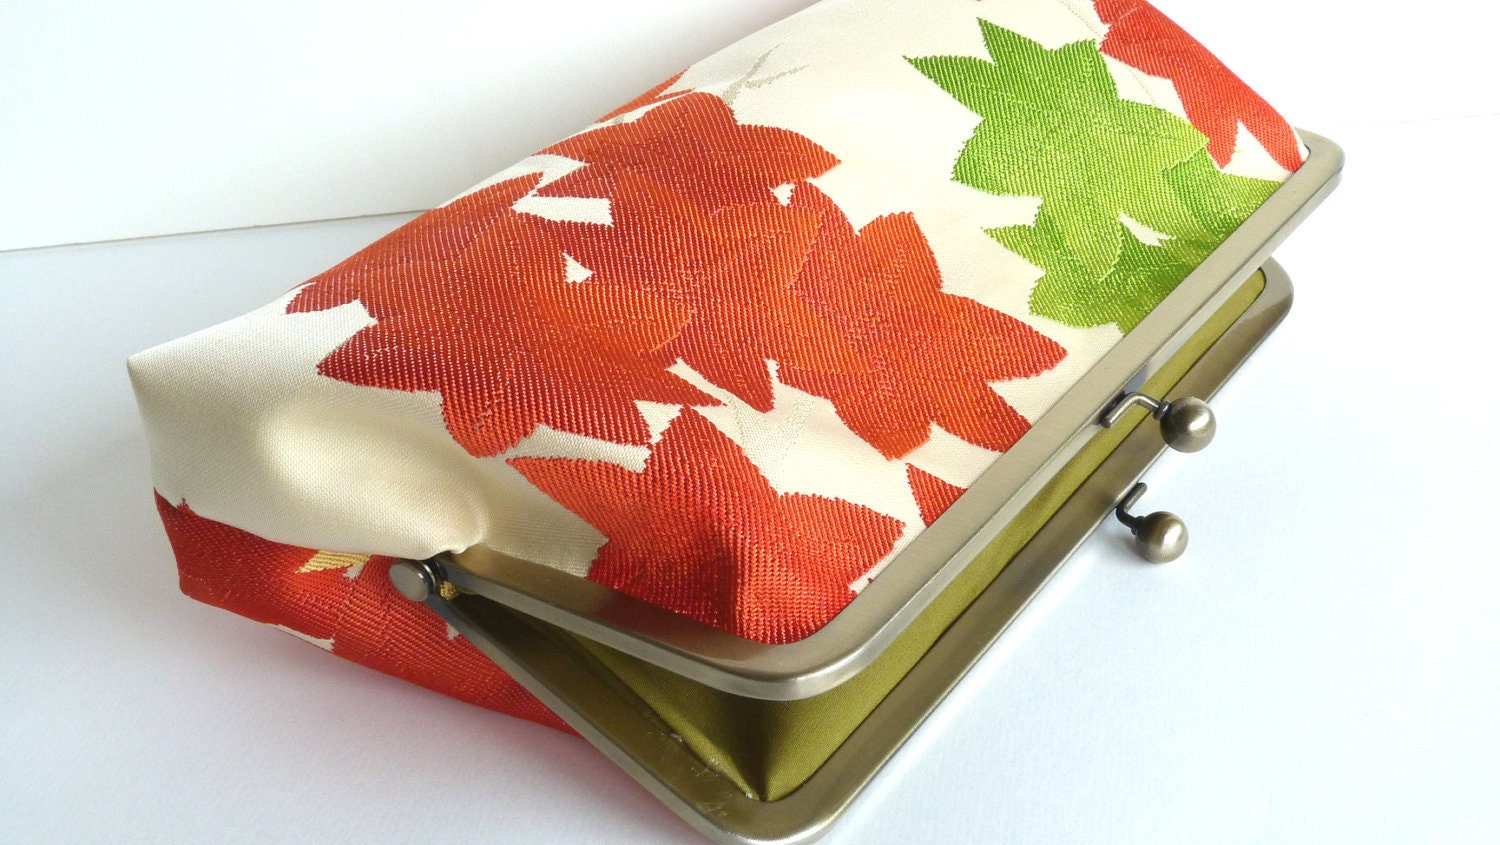 Autumn Orange and Green Japanese Maple Leaf Woven Clutch Bag, Evening Purse, Handbag - cheekyleopard